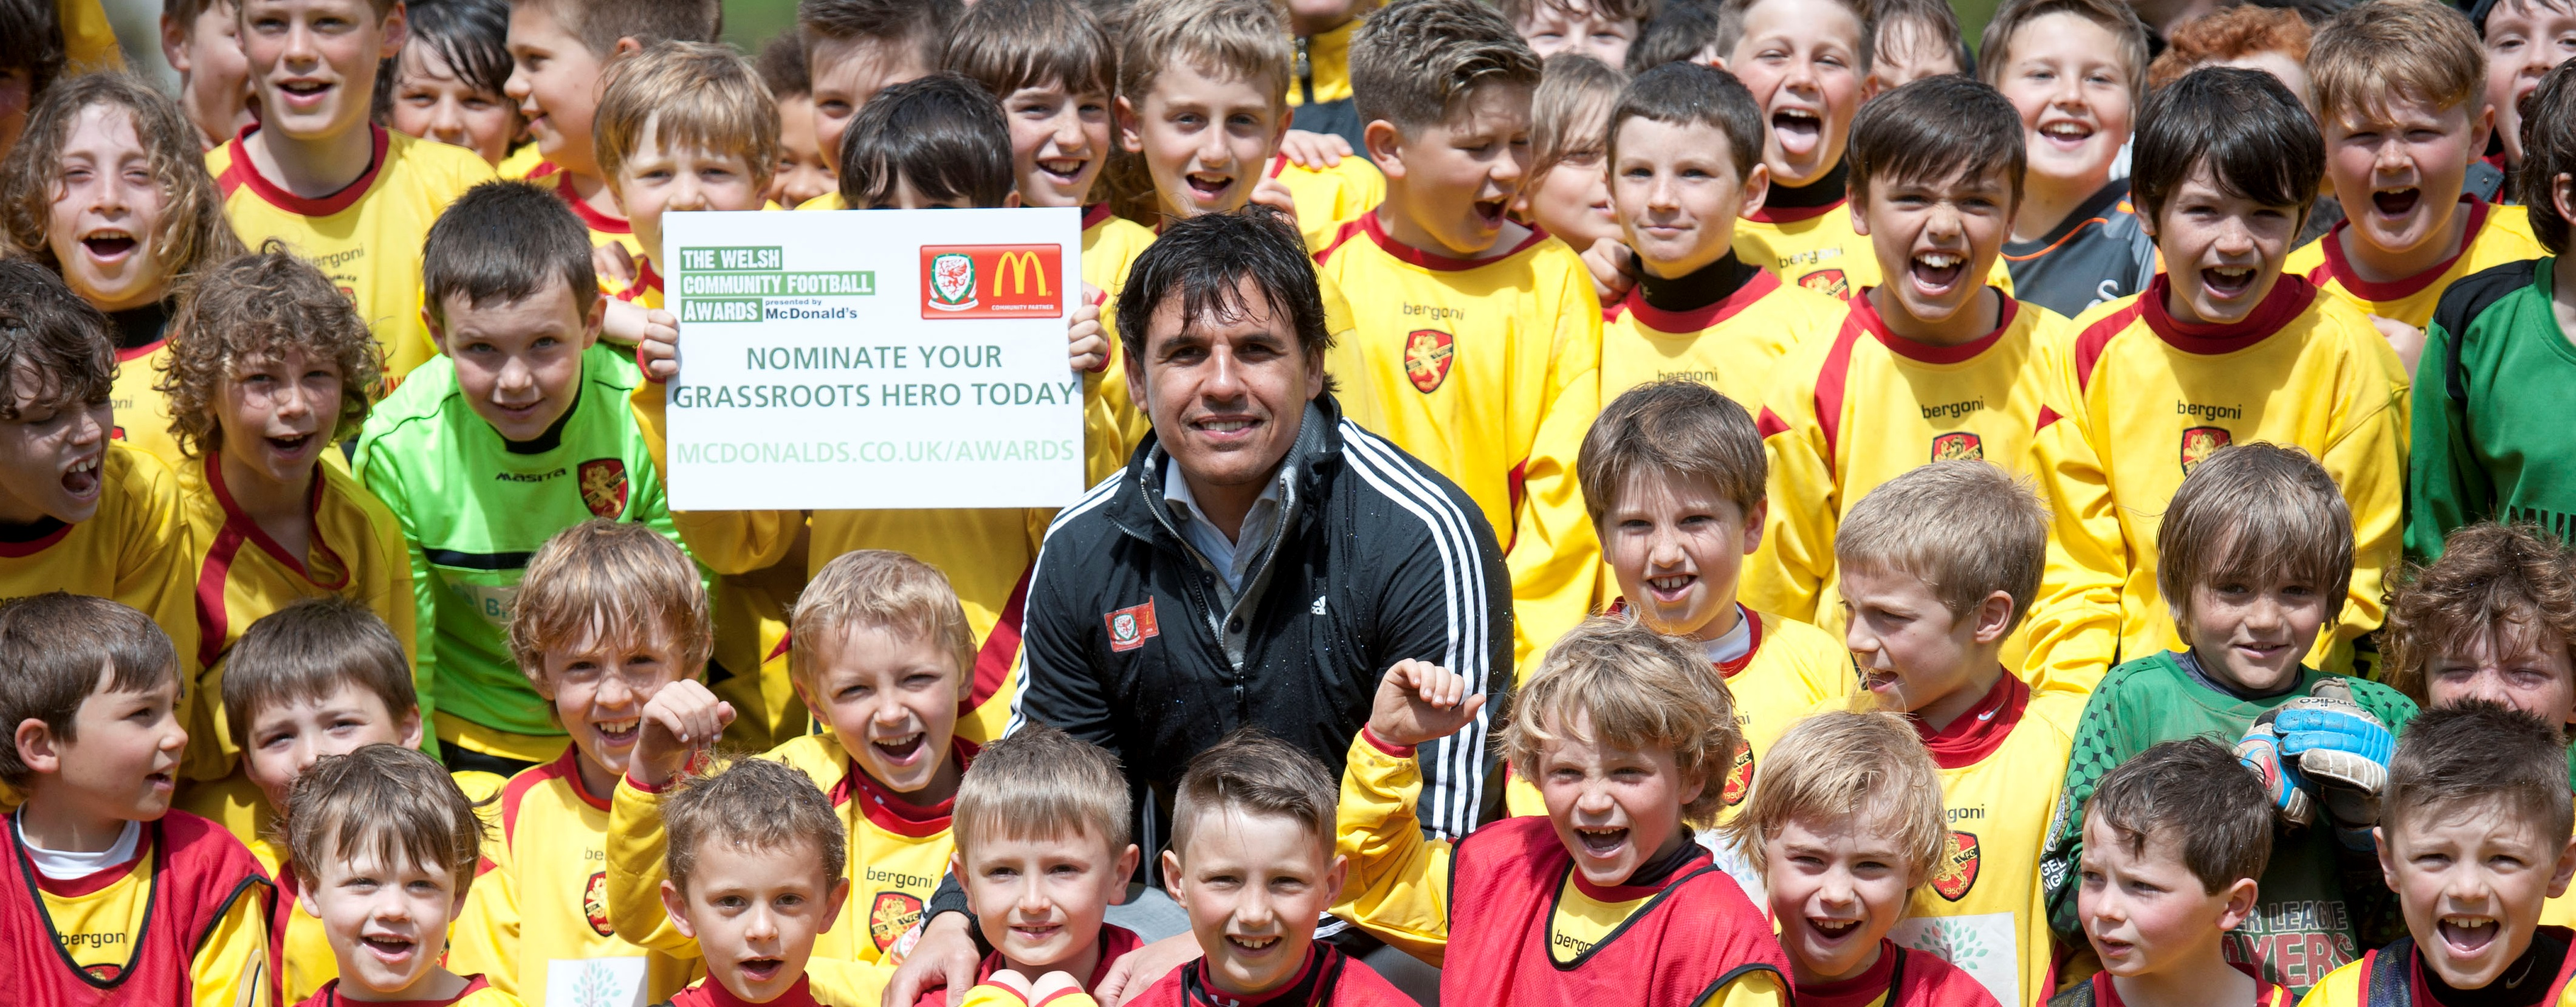 Nominations for 2014 Welsh Community Football Awards, presented by McDonald's now open